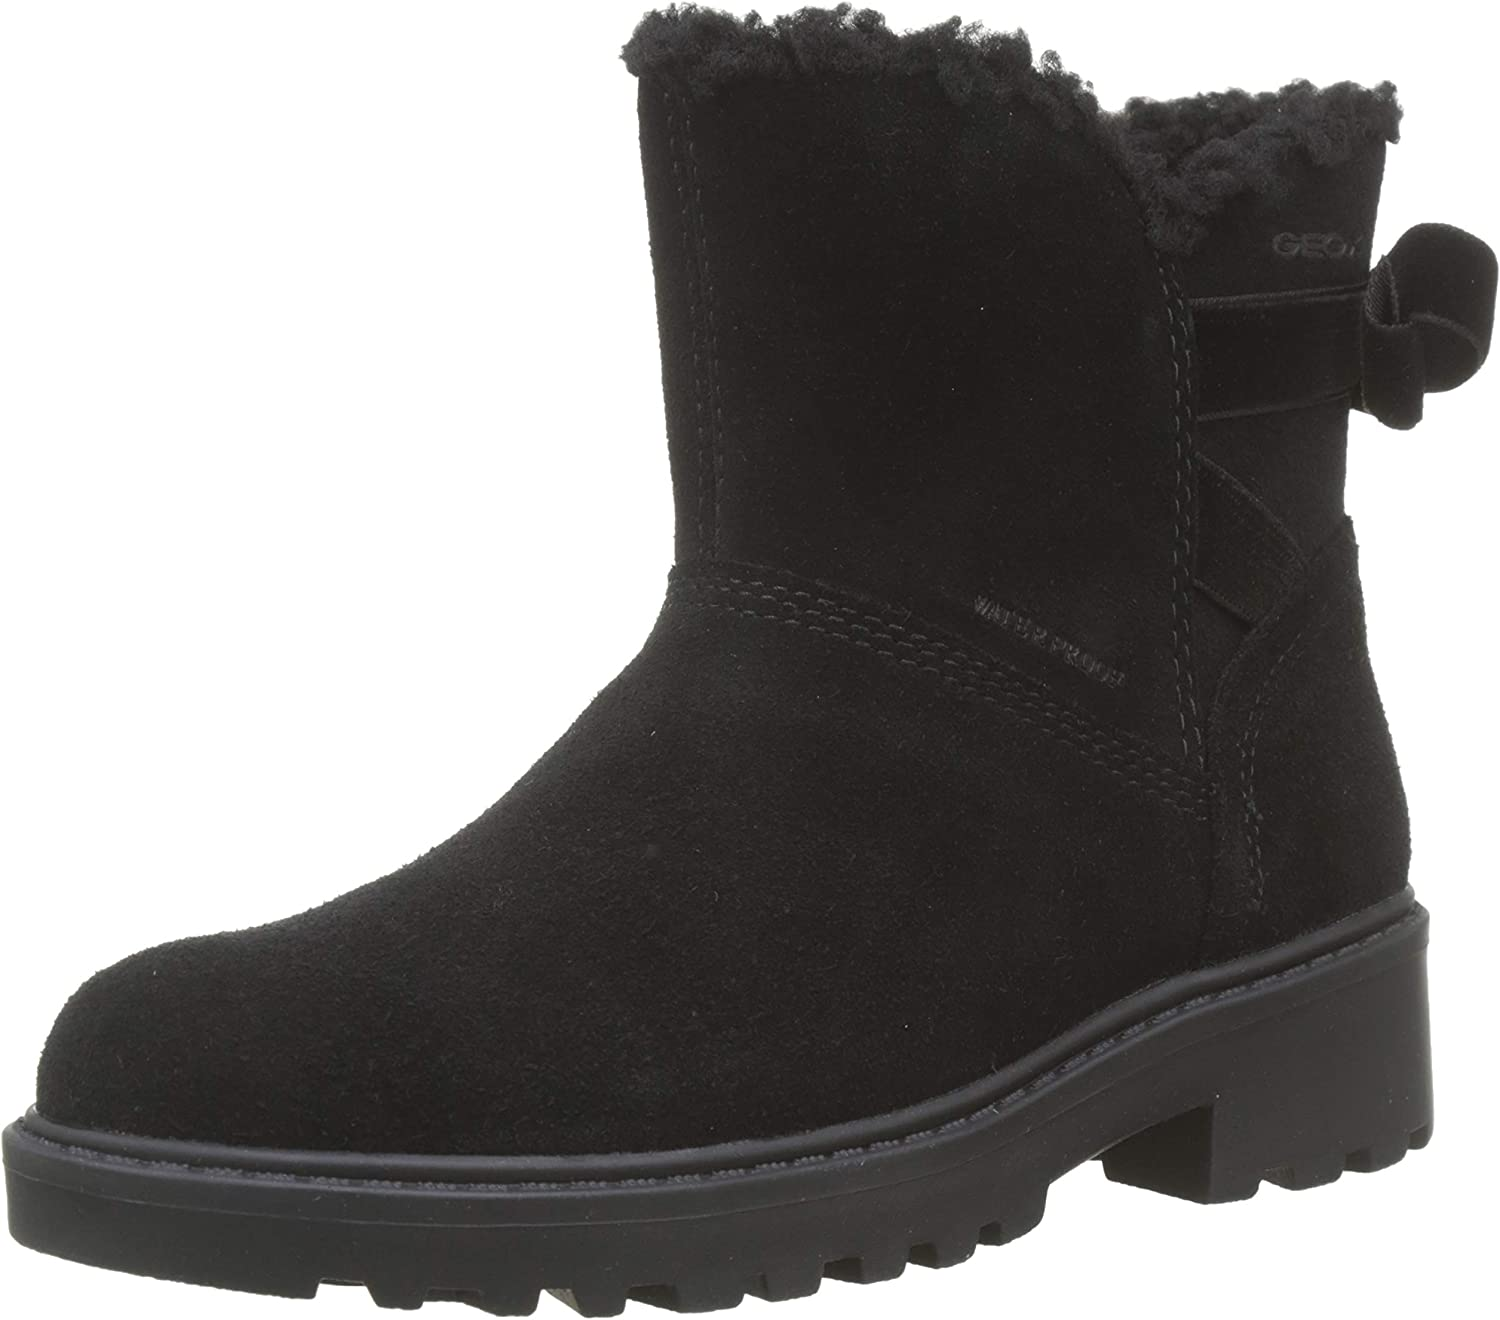 Geox Girls/' J Casey WPF a Ankle Boots